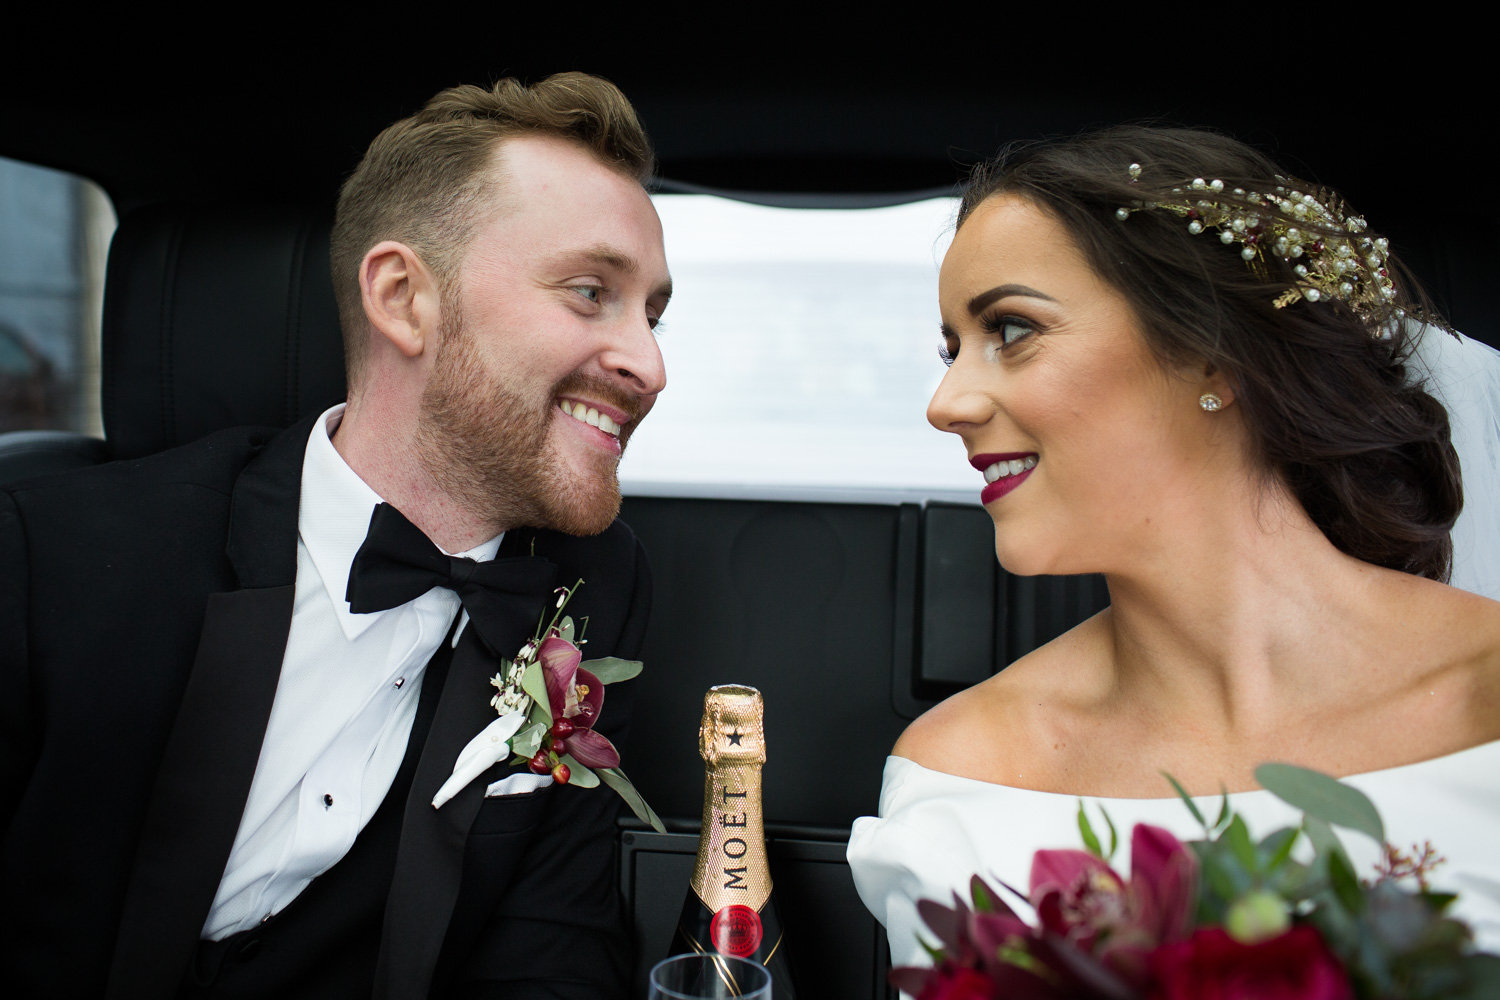 Mark_Barnes_Northern_Ireland_wedding_photographer_Innishowen_Gateway_Donegal_Wedding_photography_Donegal_wedding_photographer-38.jpg